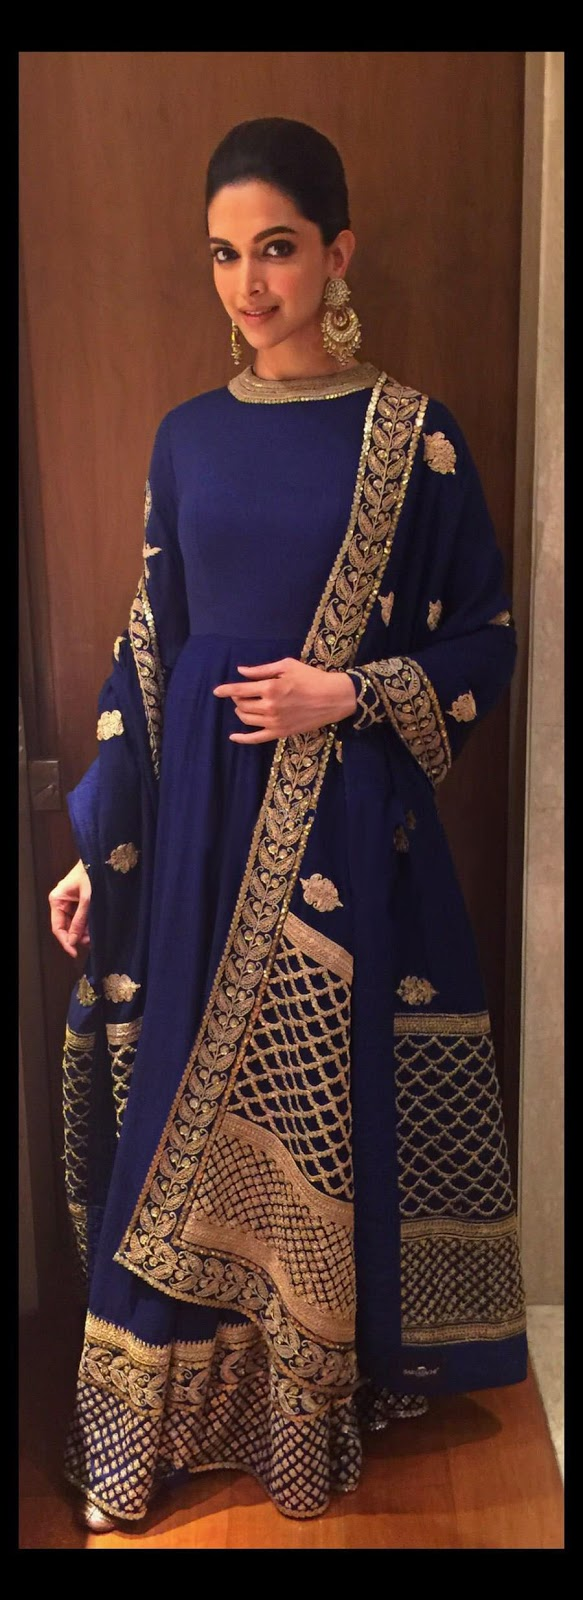 Deepika Padukone in Blue High Neck Anarkali Dress at Telegraph Dinner in Kolkata